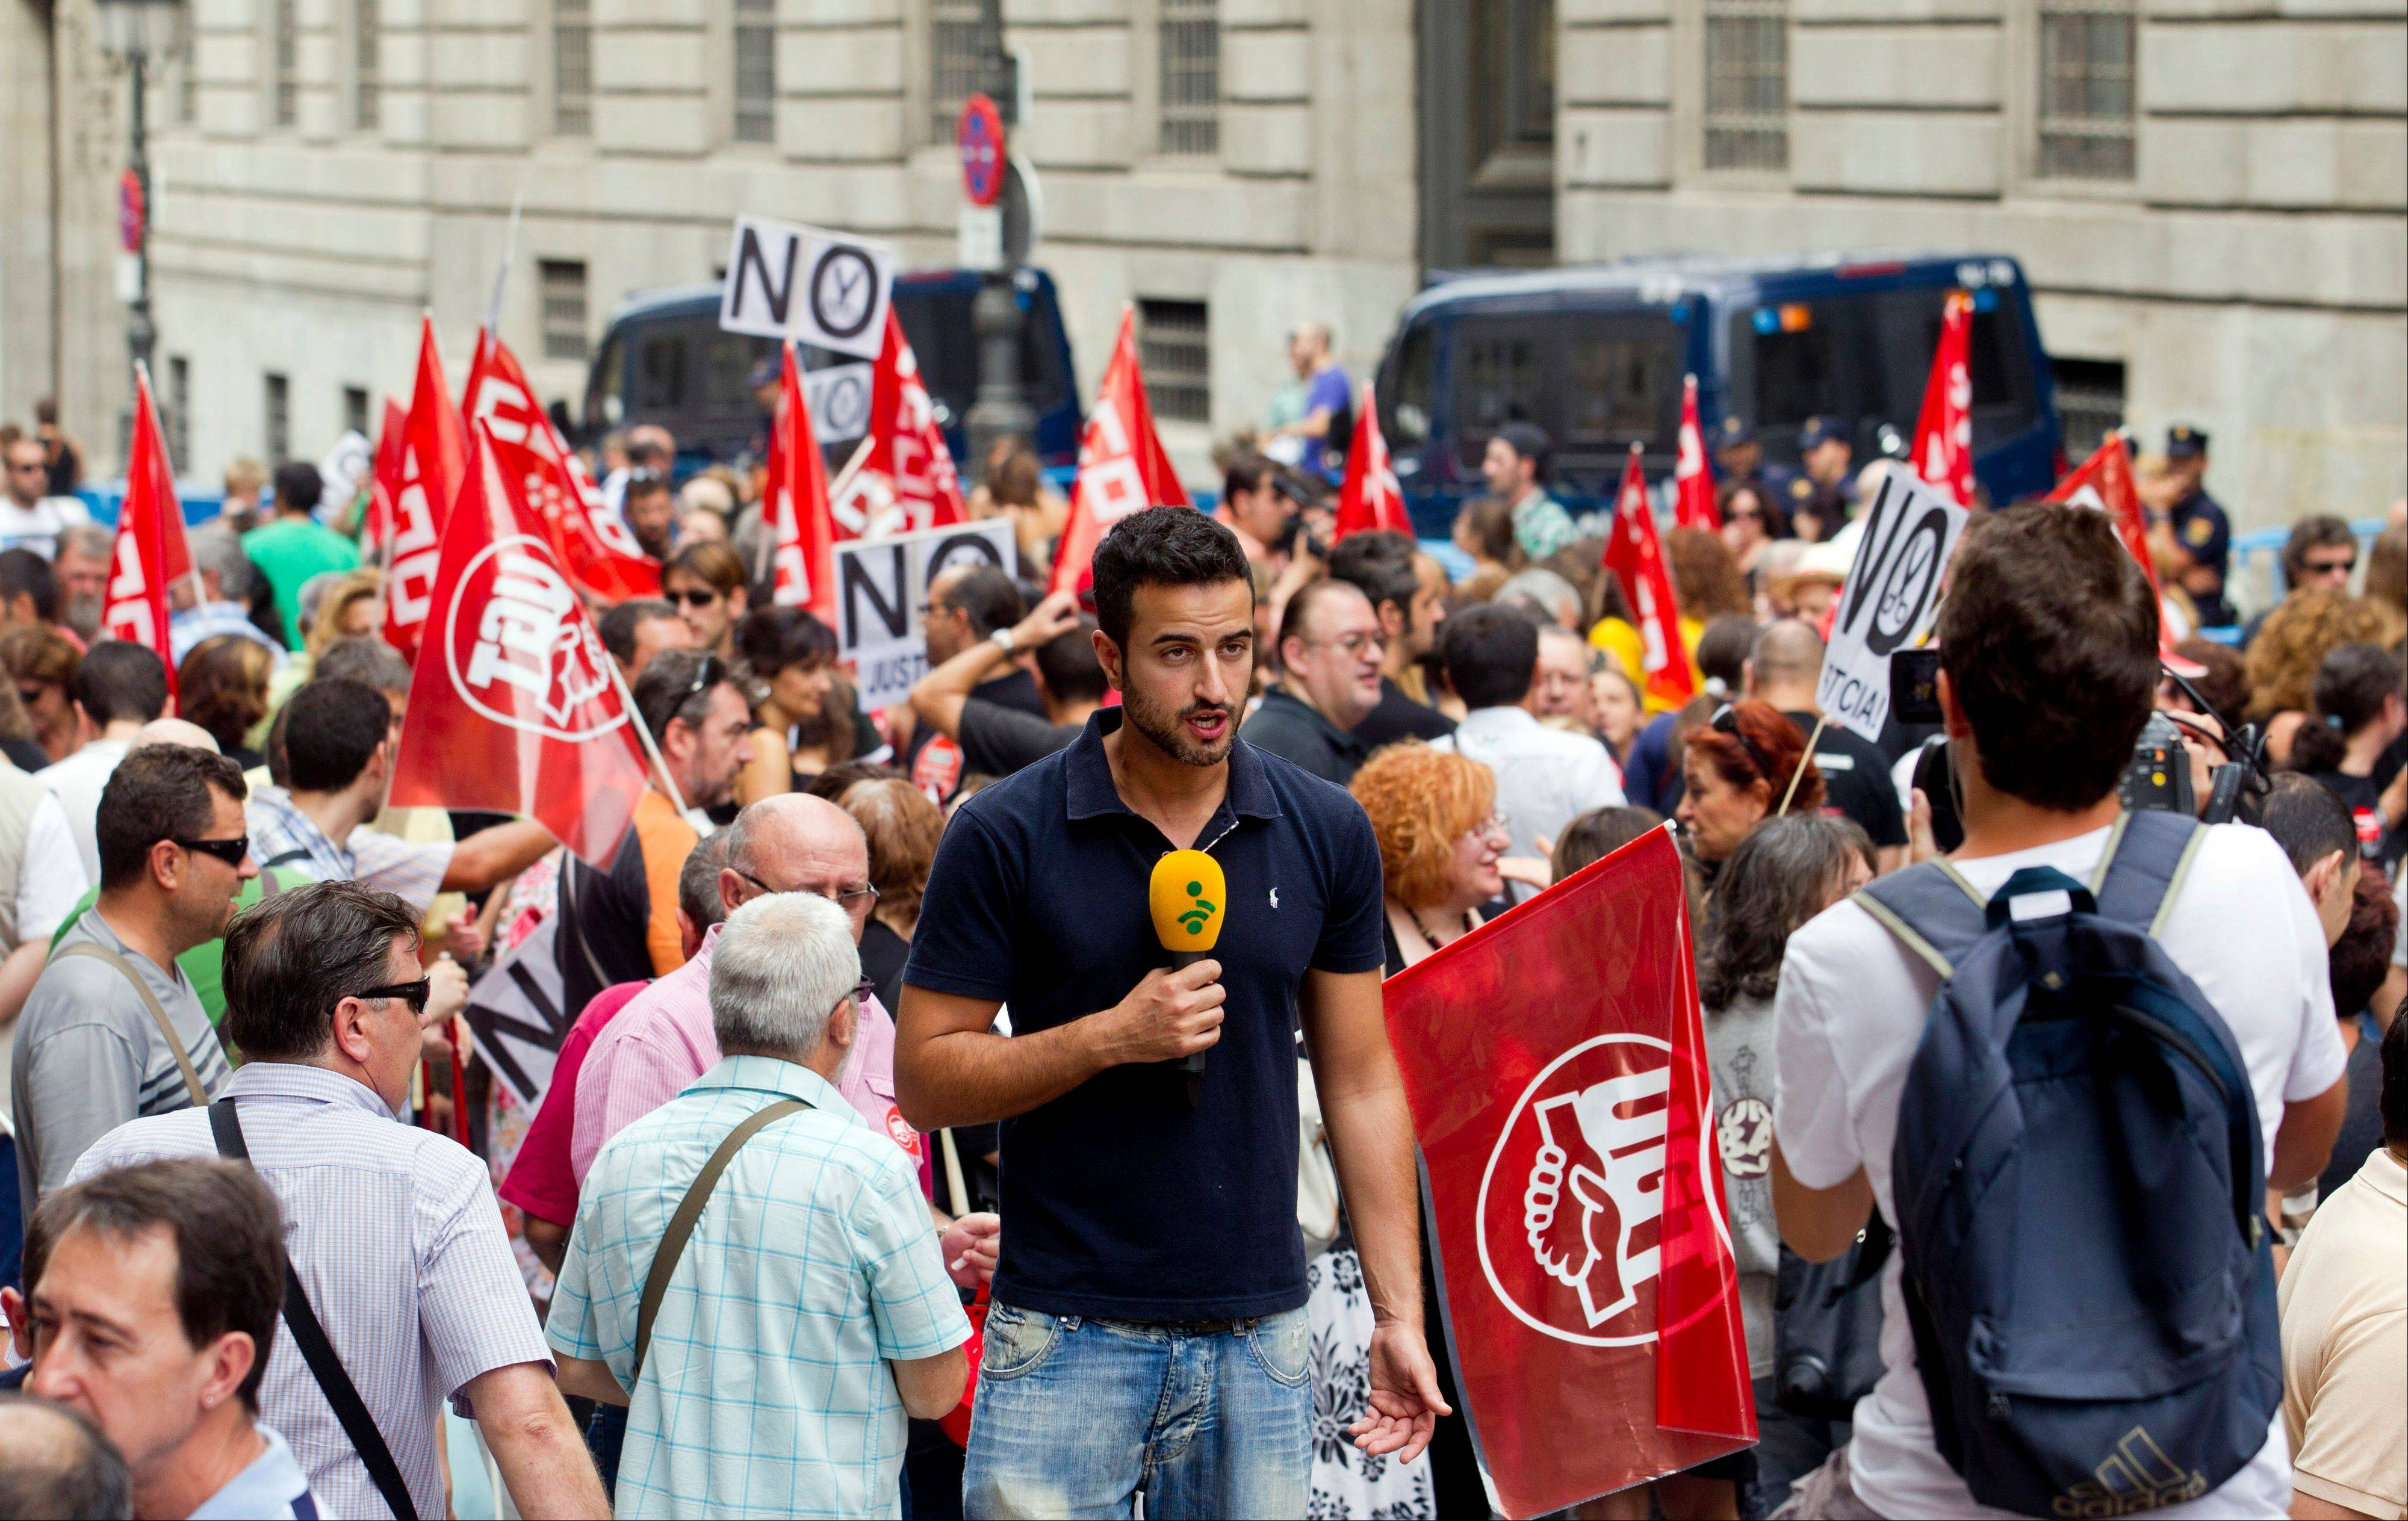 A television journalist reports from outside the Finance Ministry as civil servants protest, in Madrid, Friday